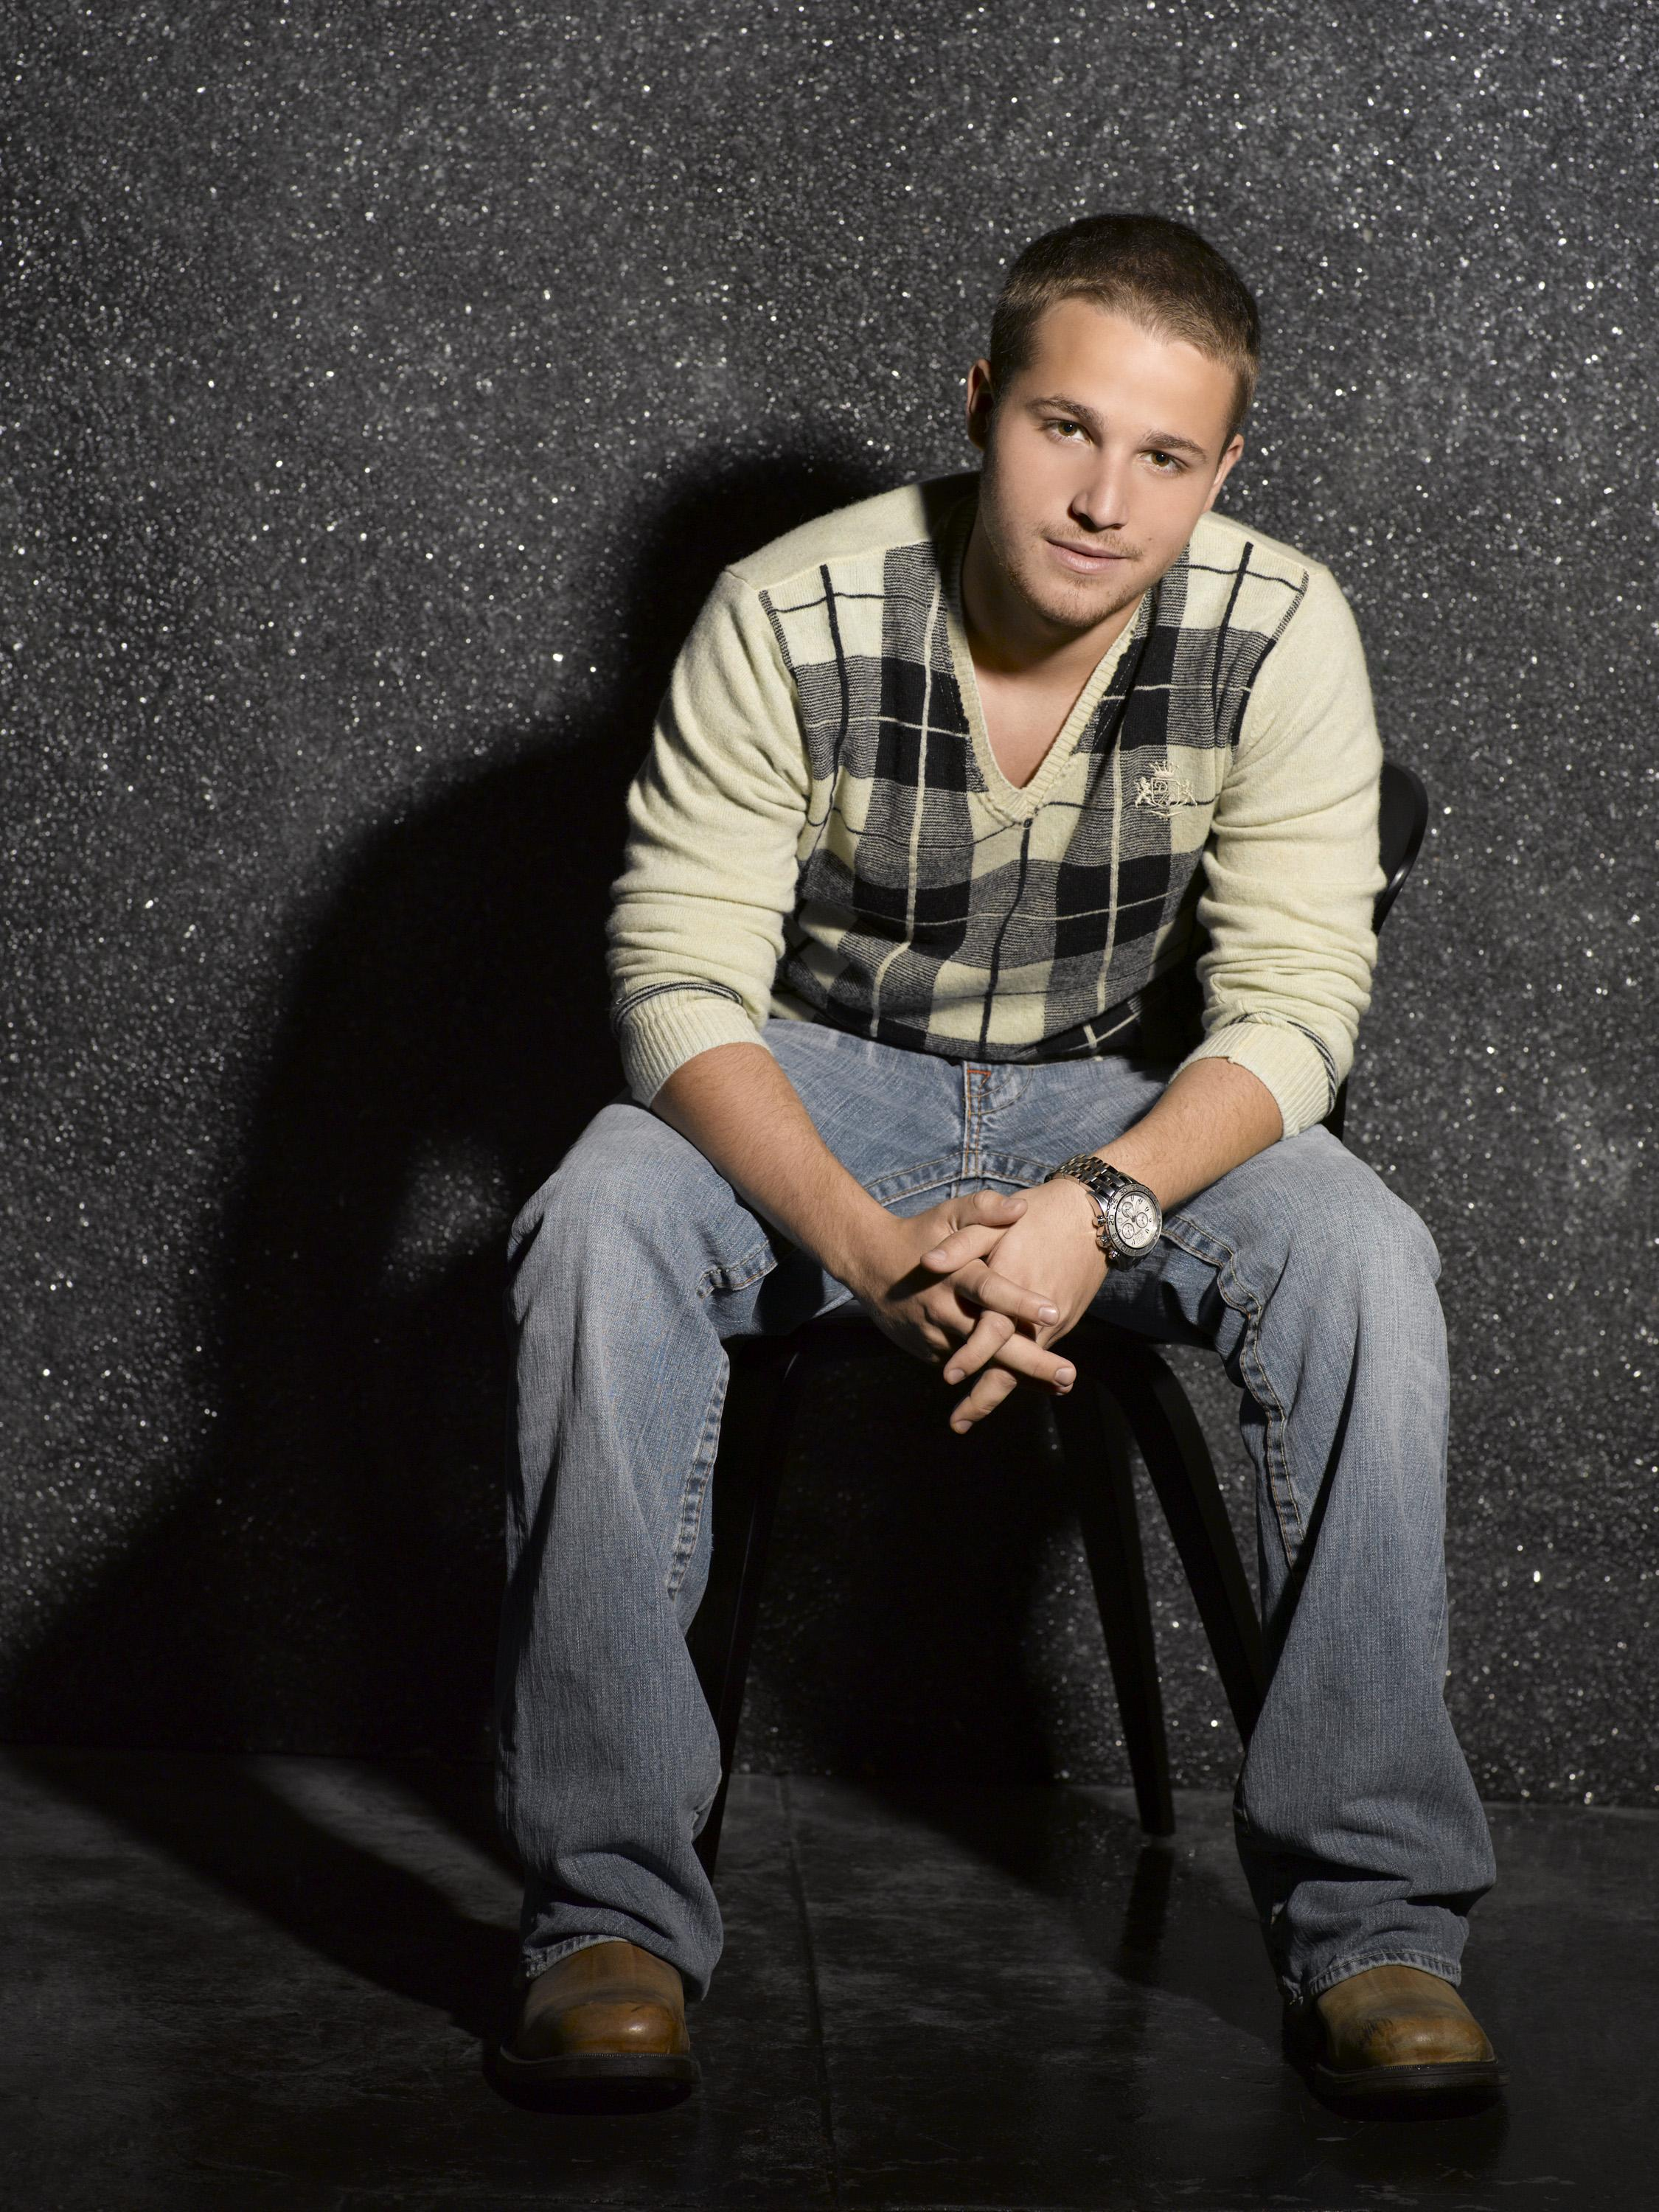 from Nicolas shawn pyfrom desperate housewives gay